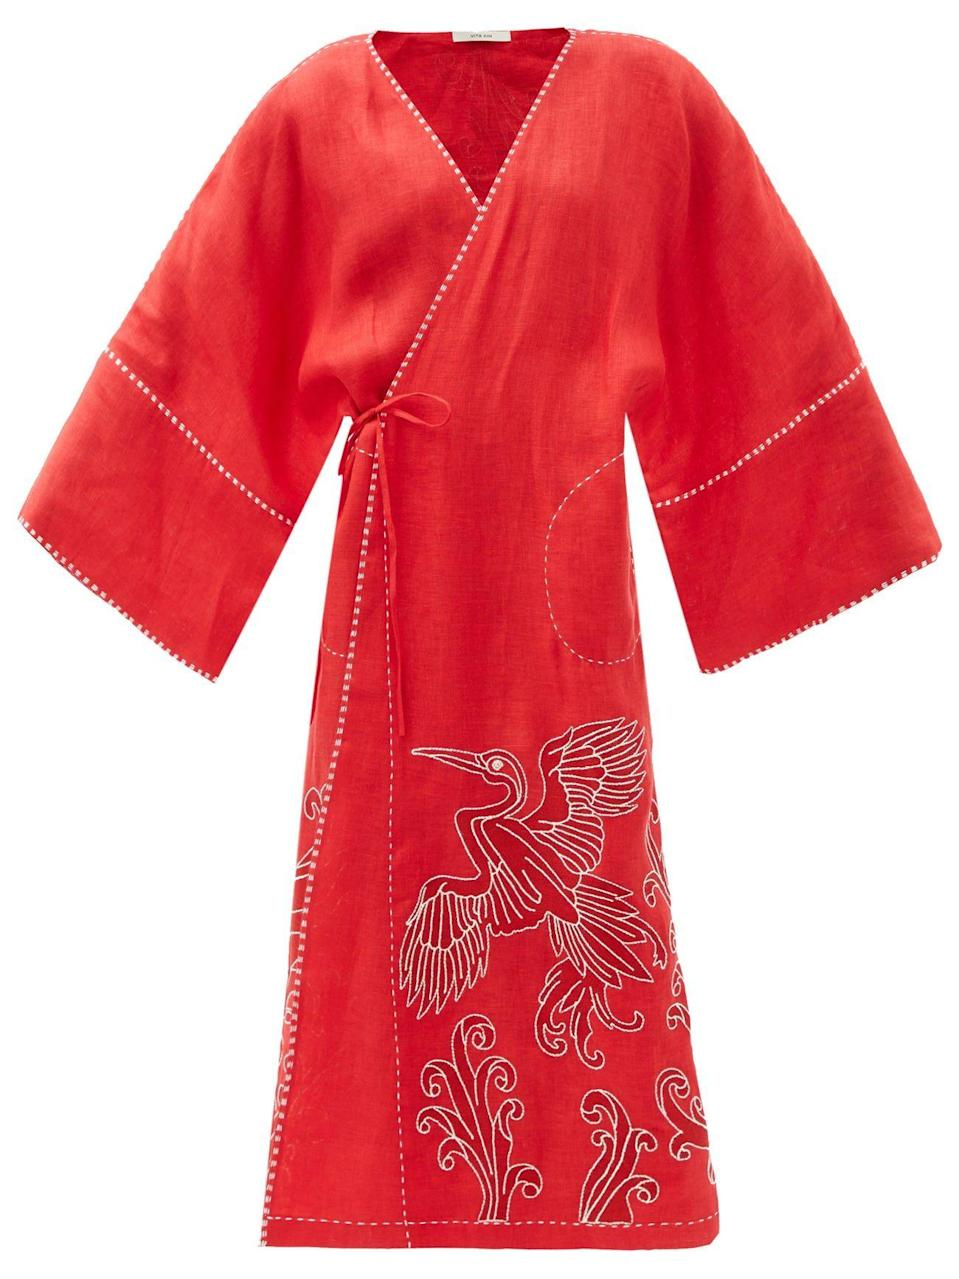 <p>The Lunar New Year is an opportunity to mark new beginnings and growth – so why not look the part? Welcome the year of the Ox in style by embracing bright red, gold and yellow tones with your Lunar New Year looks.</p>